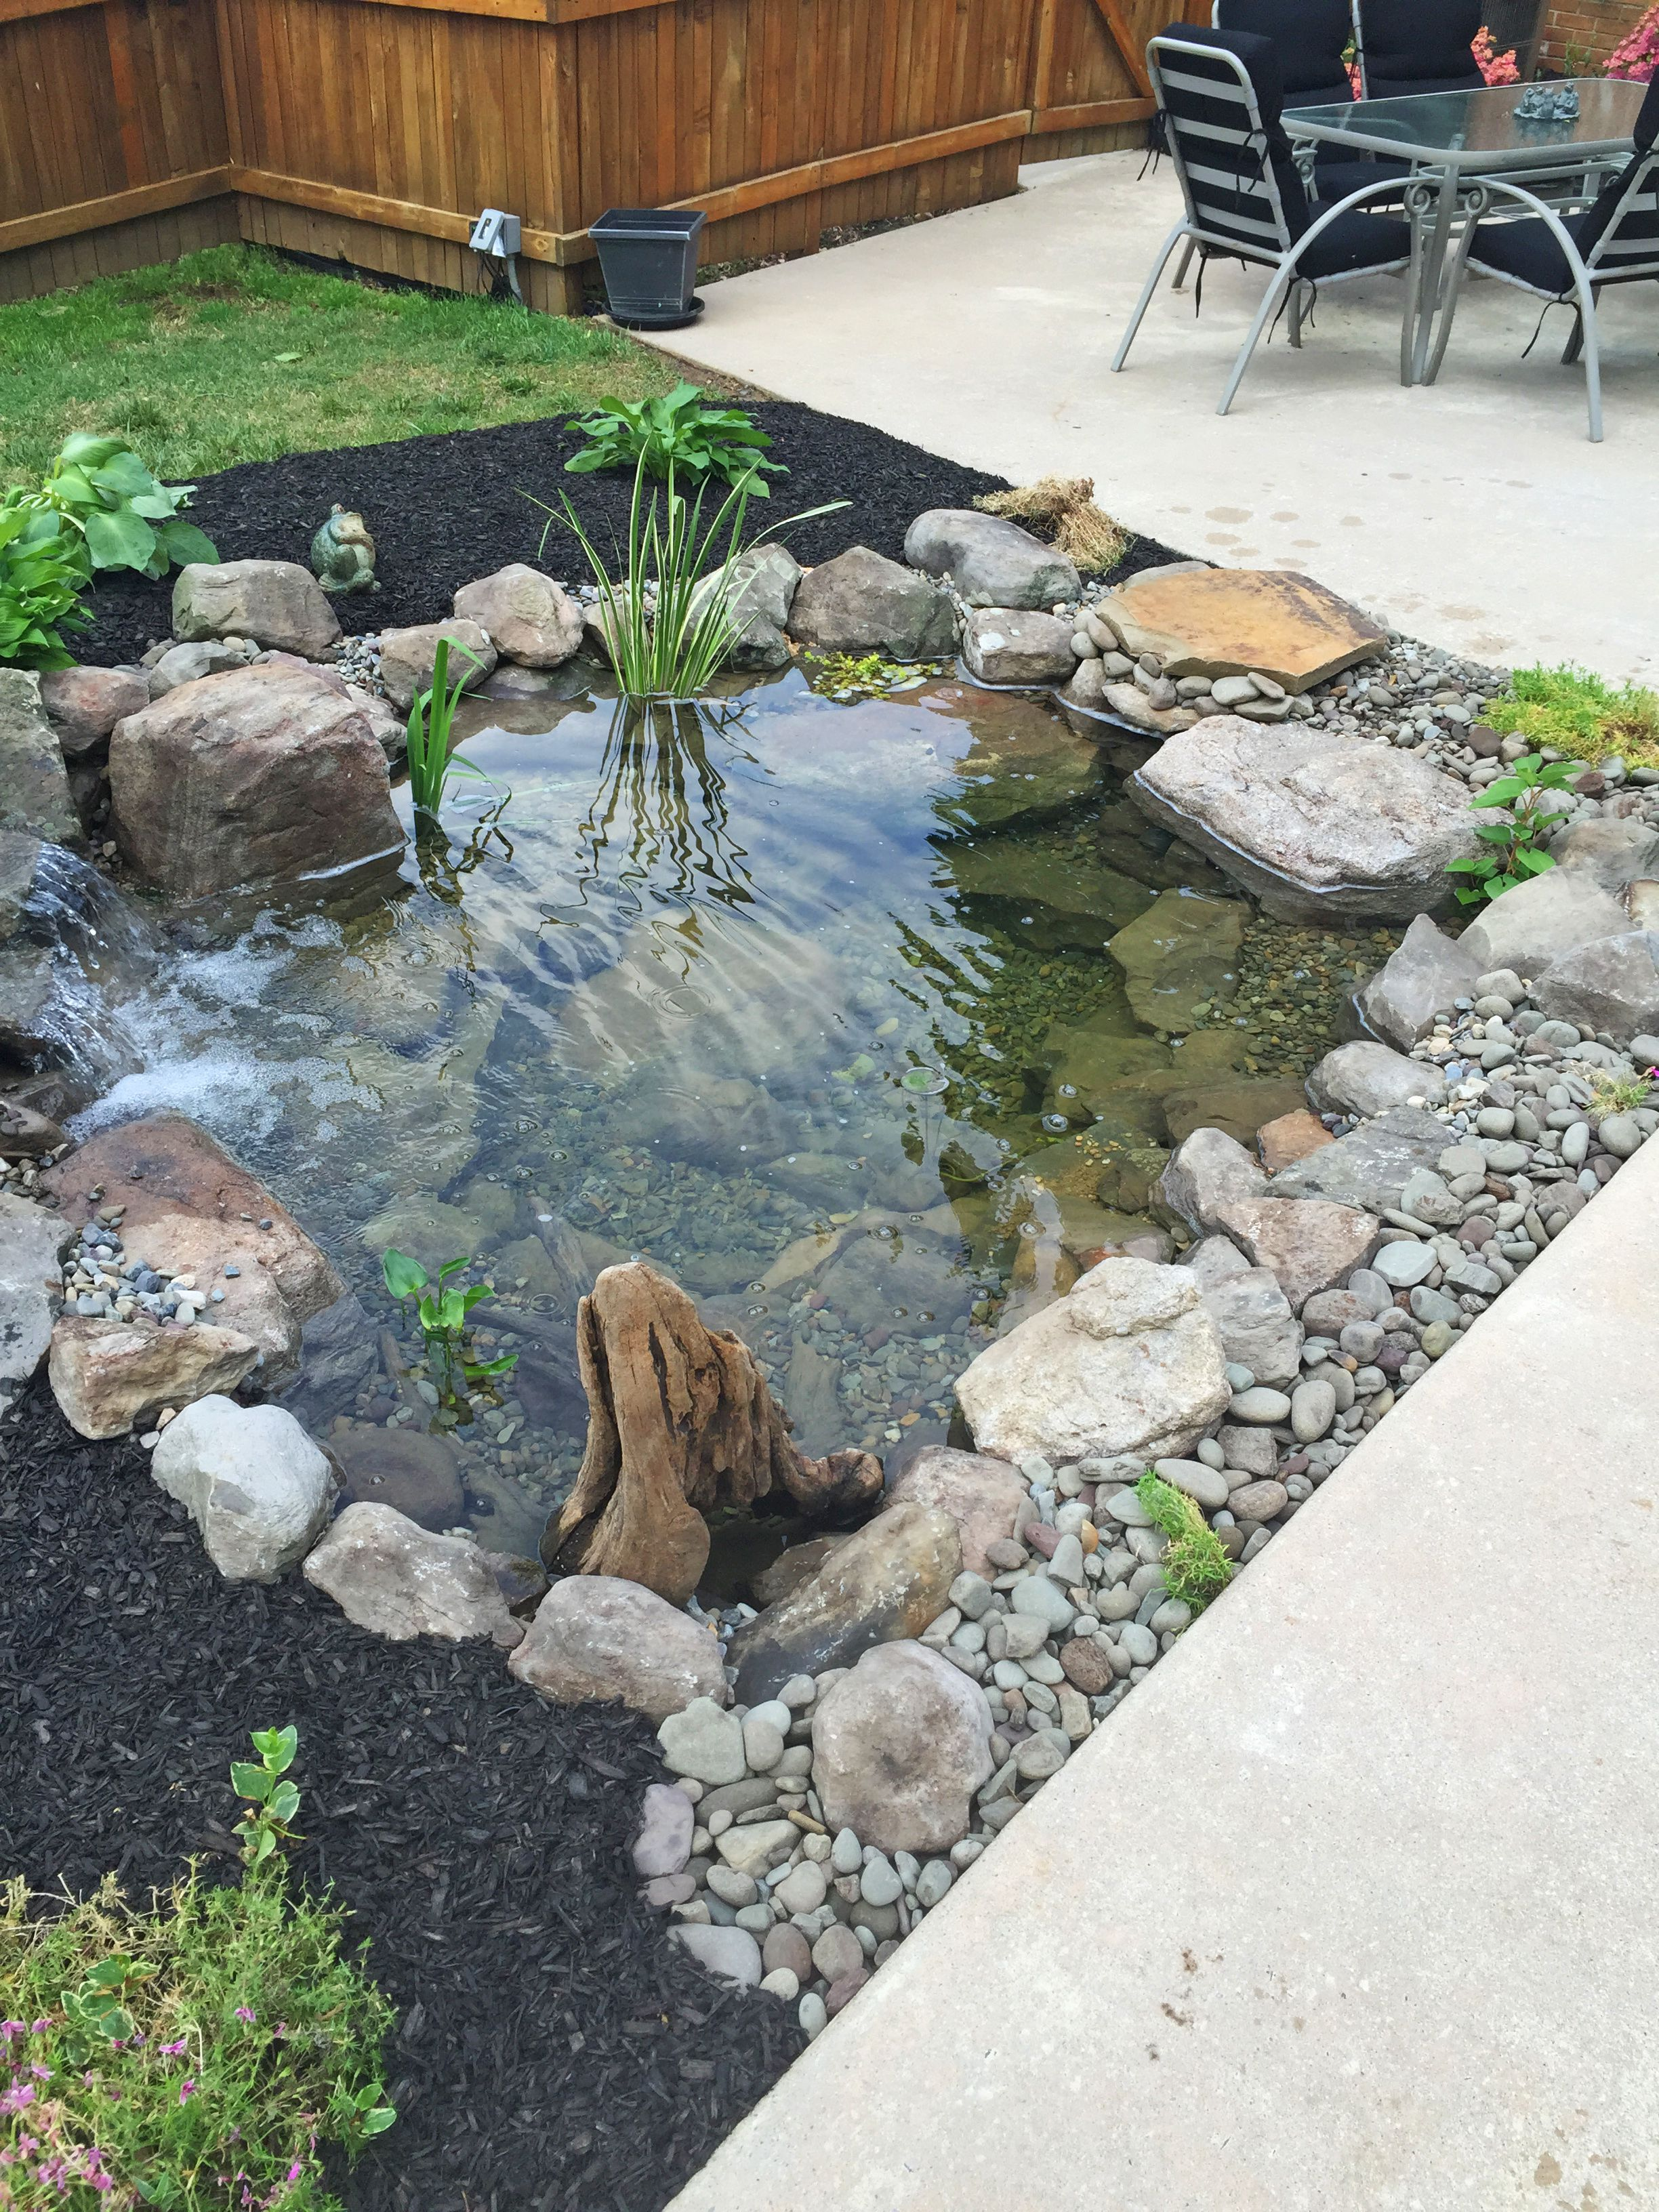 backyard fish pond waterfall koi water garden waterscapes water